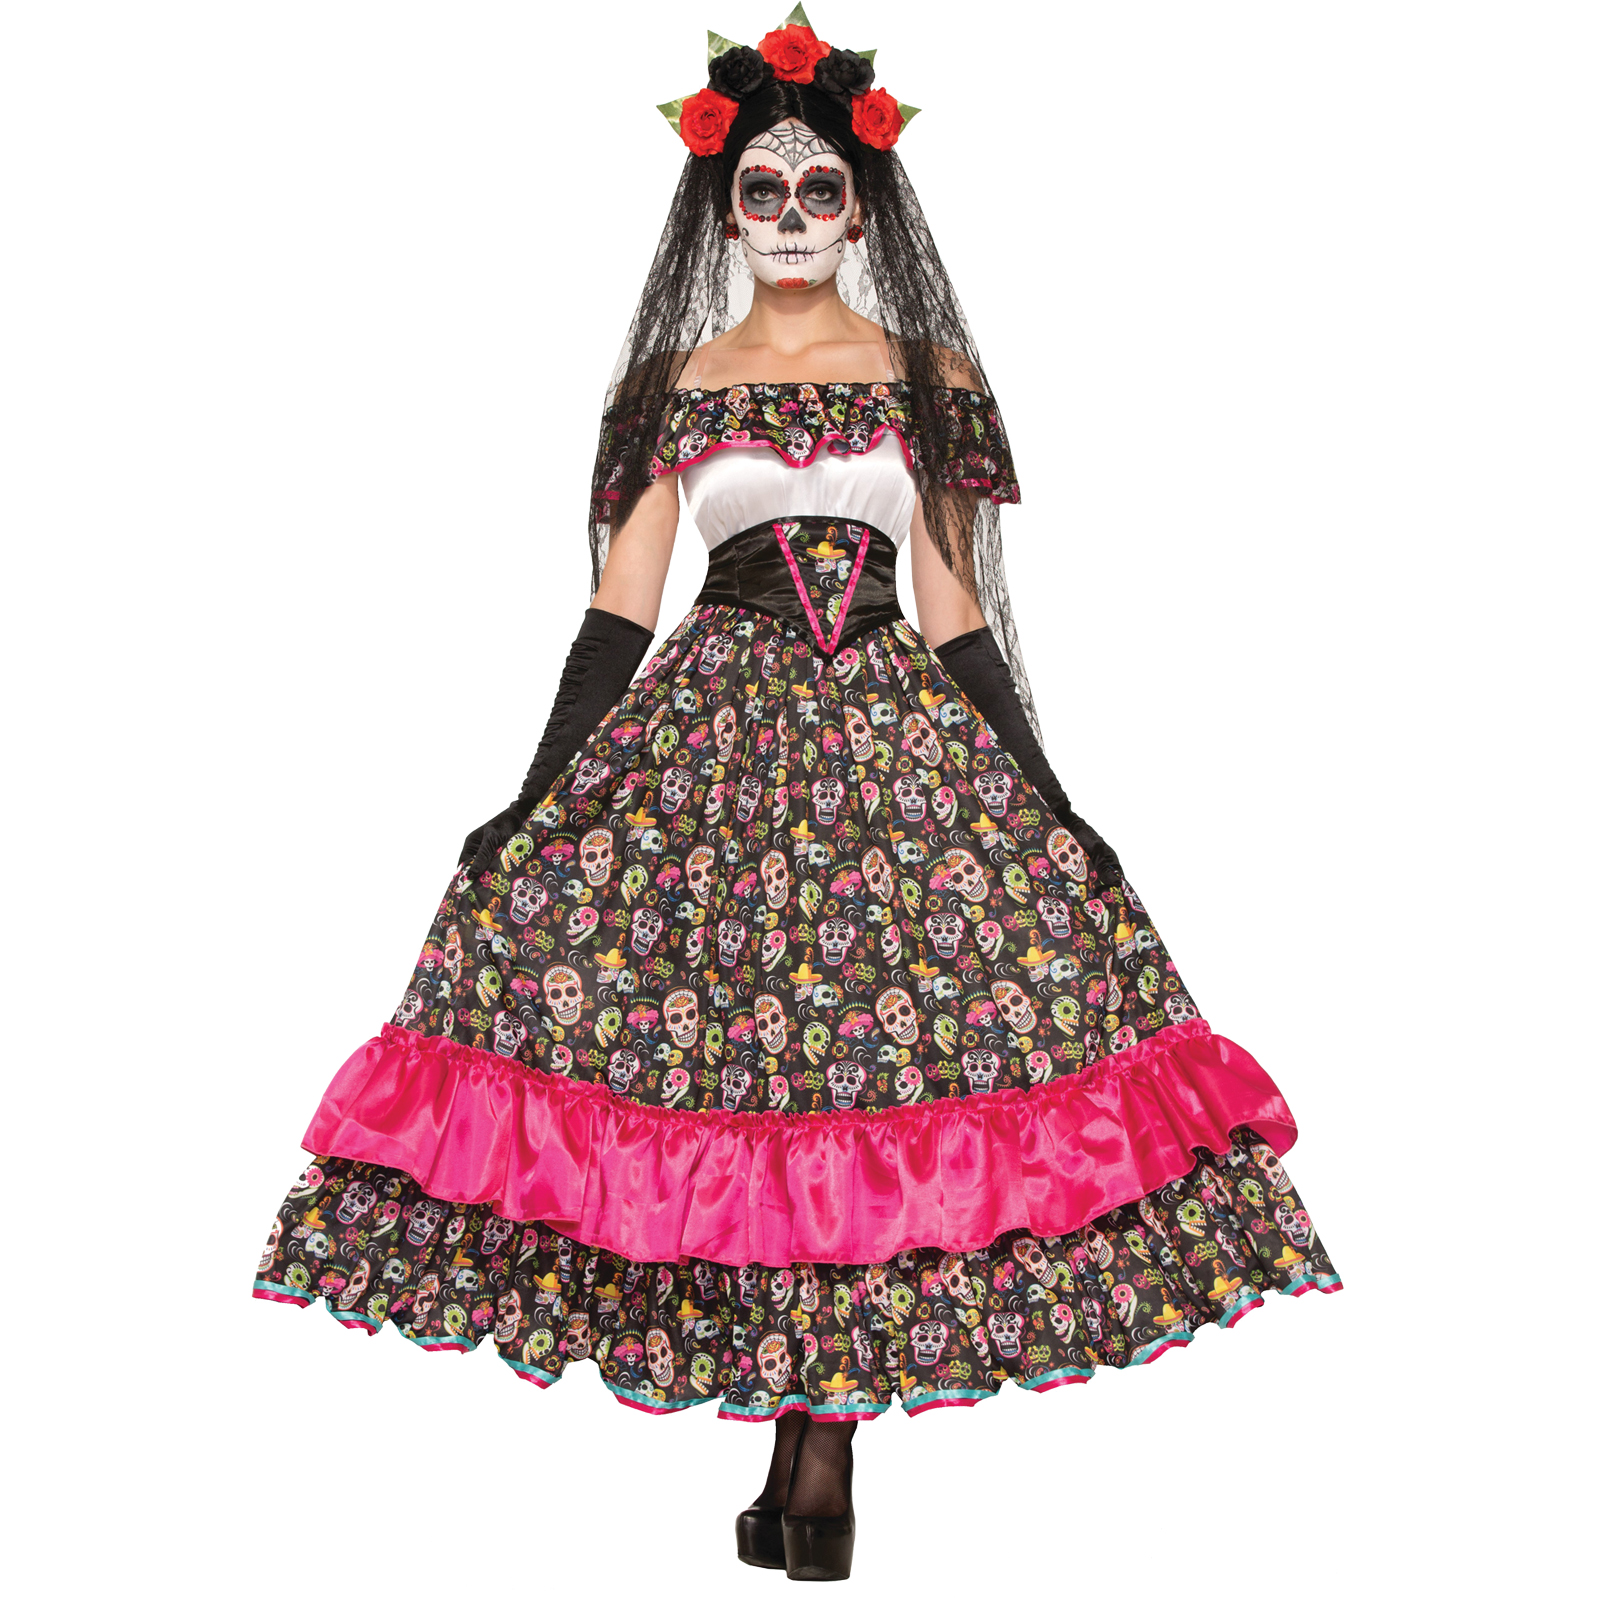 Women's Day Of Dead Spanish Lady Costume Size: One Size Fits Most PartNumber: 05012606000P KsnValue: 7500082 MfgPartNumber: FM74798